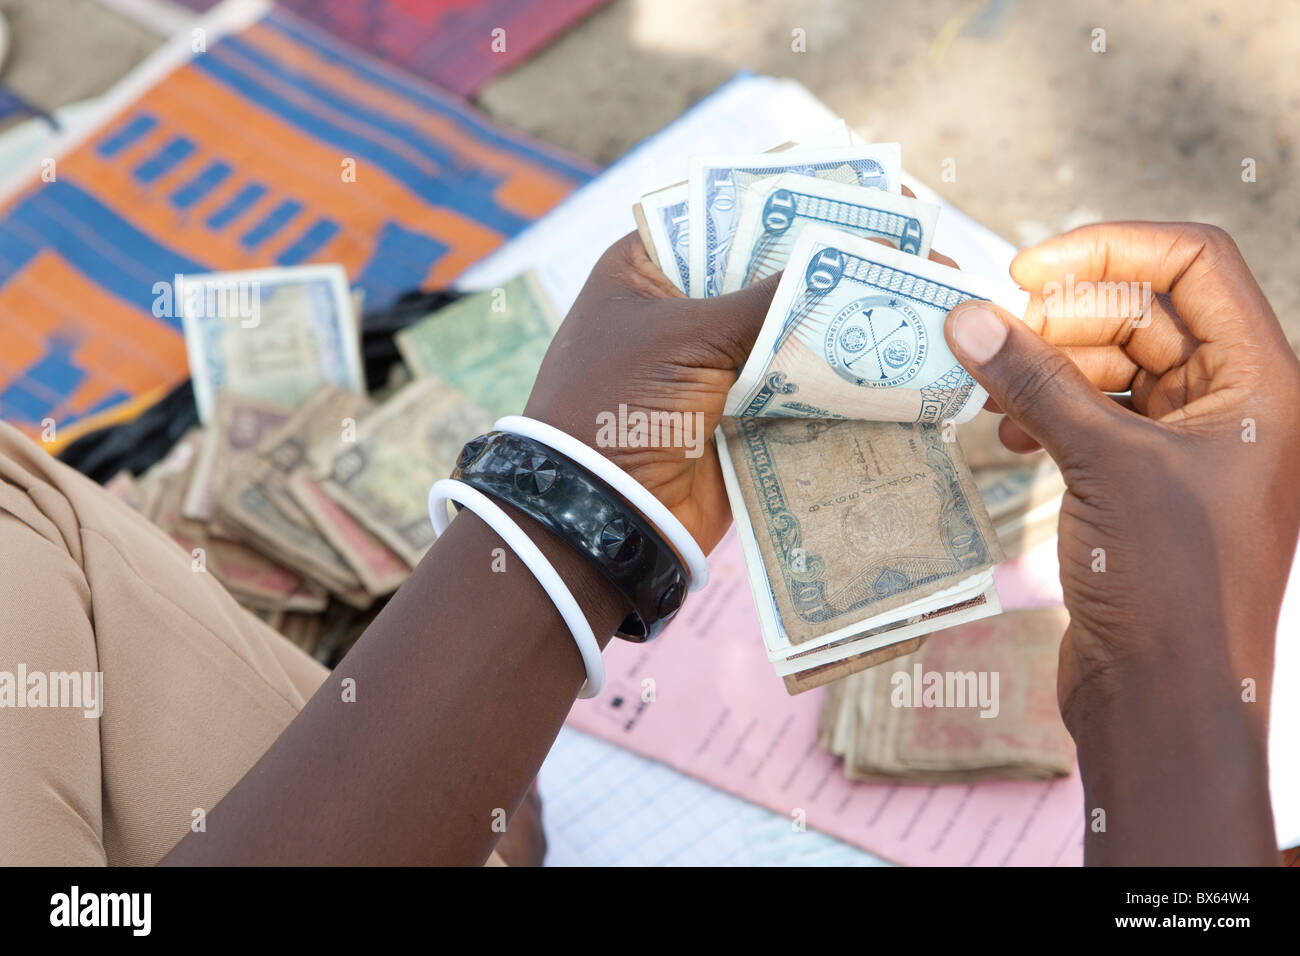 A woman counts Liberian dollars in Kakata, Liberia, West Africa. - Stock Image